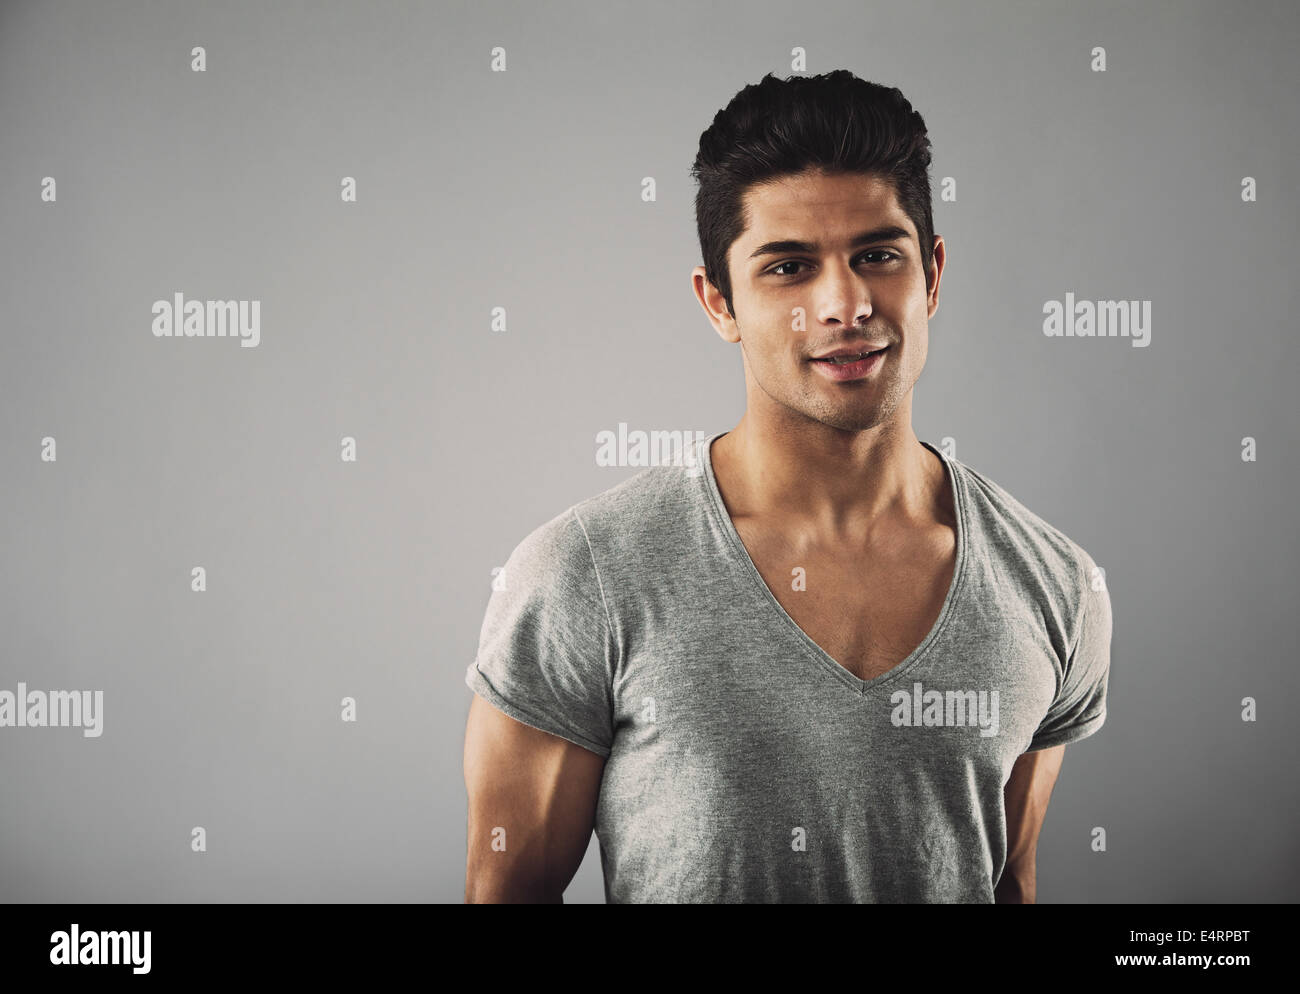 Portrait of handsome young hispanic male fashion model posing against grey background with copy space. - Stock Image